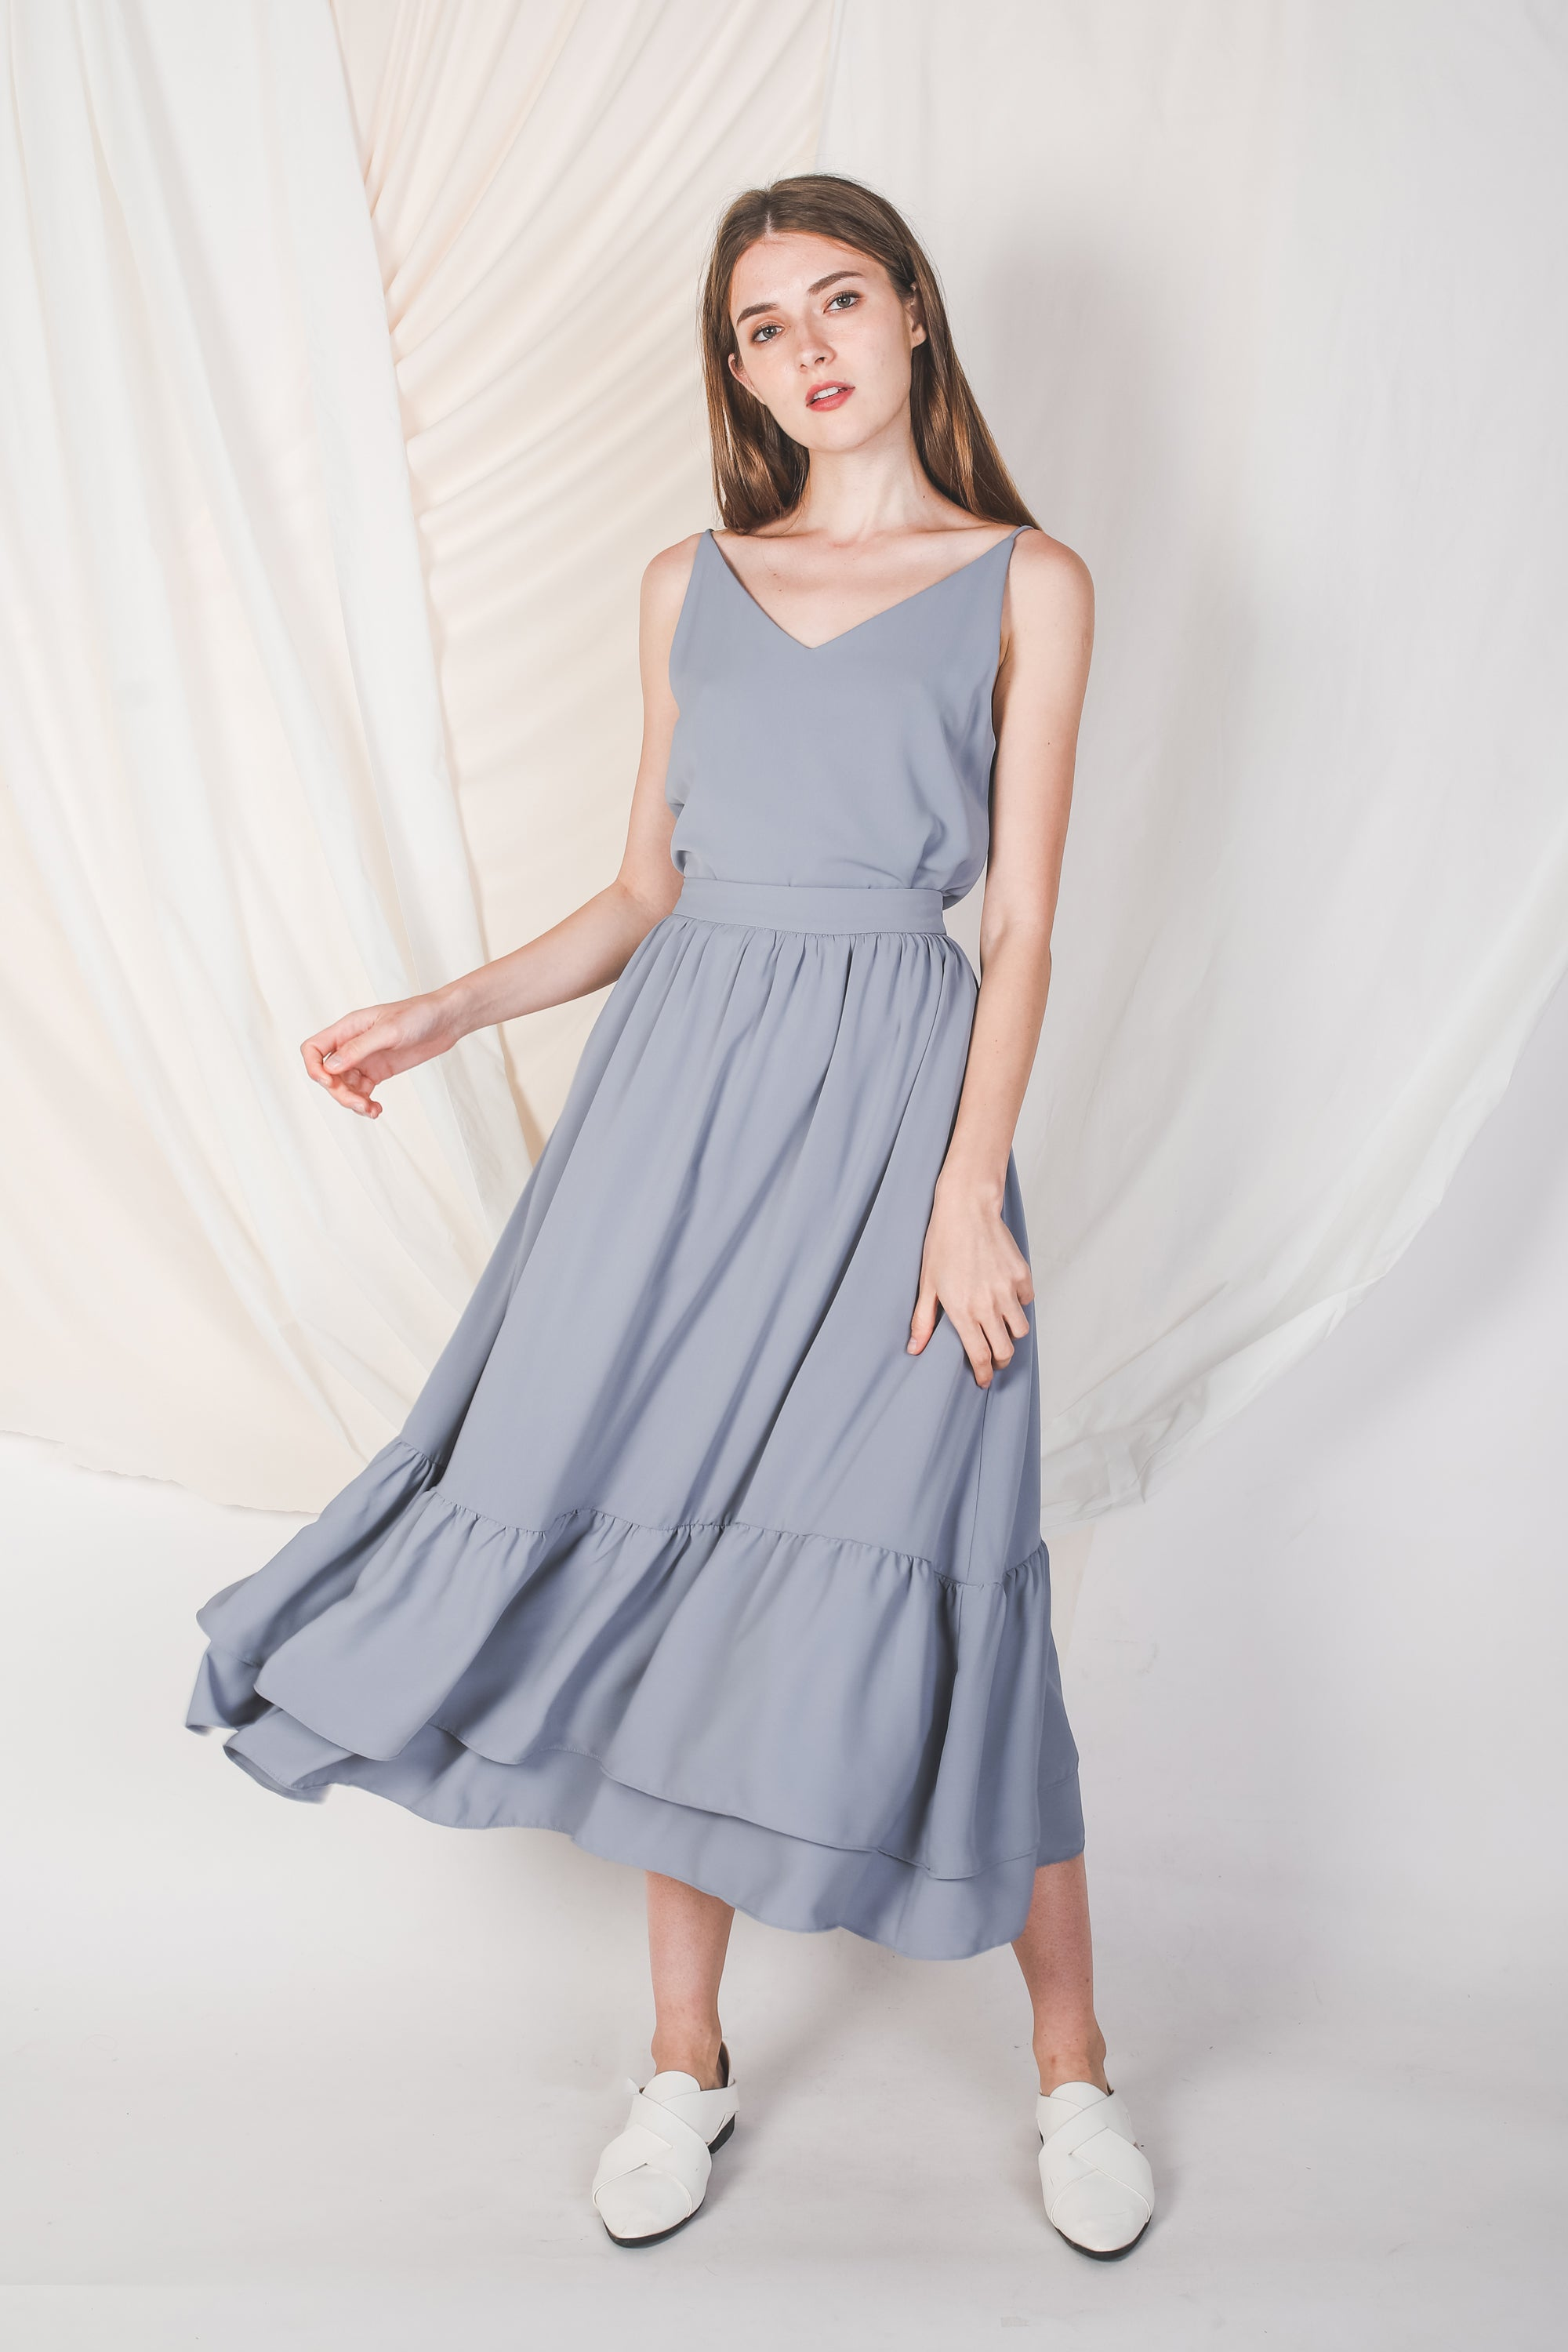 Double Ruffle Skirt In Dusty Blue